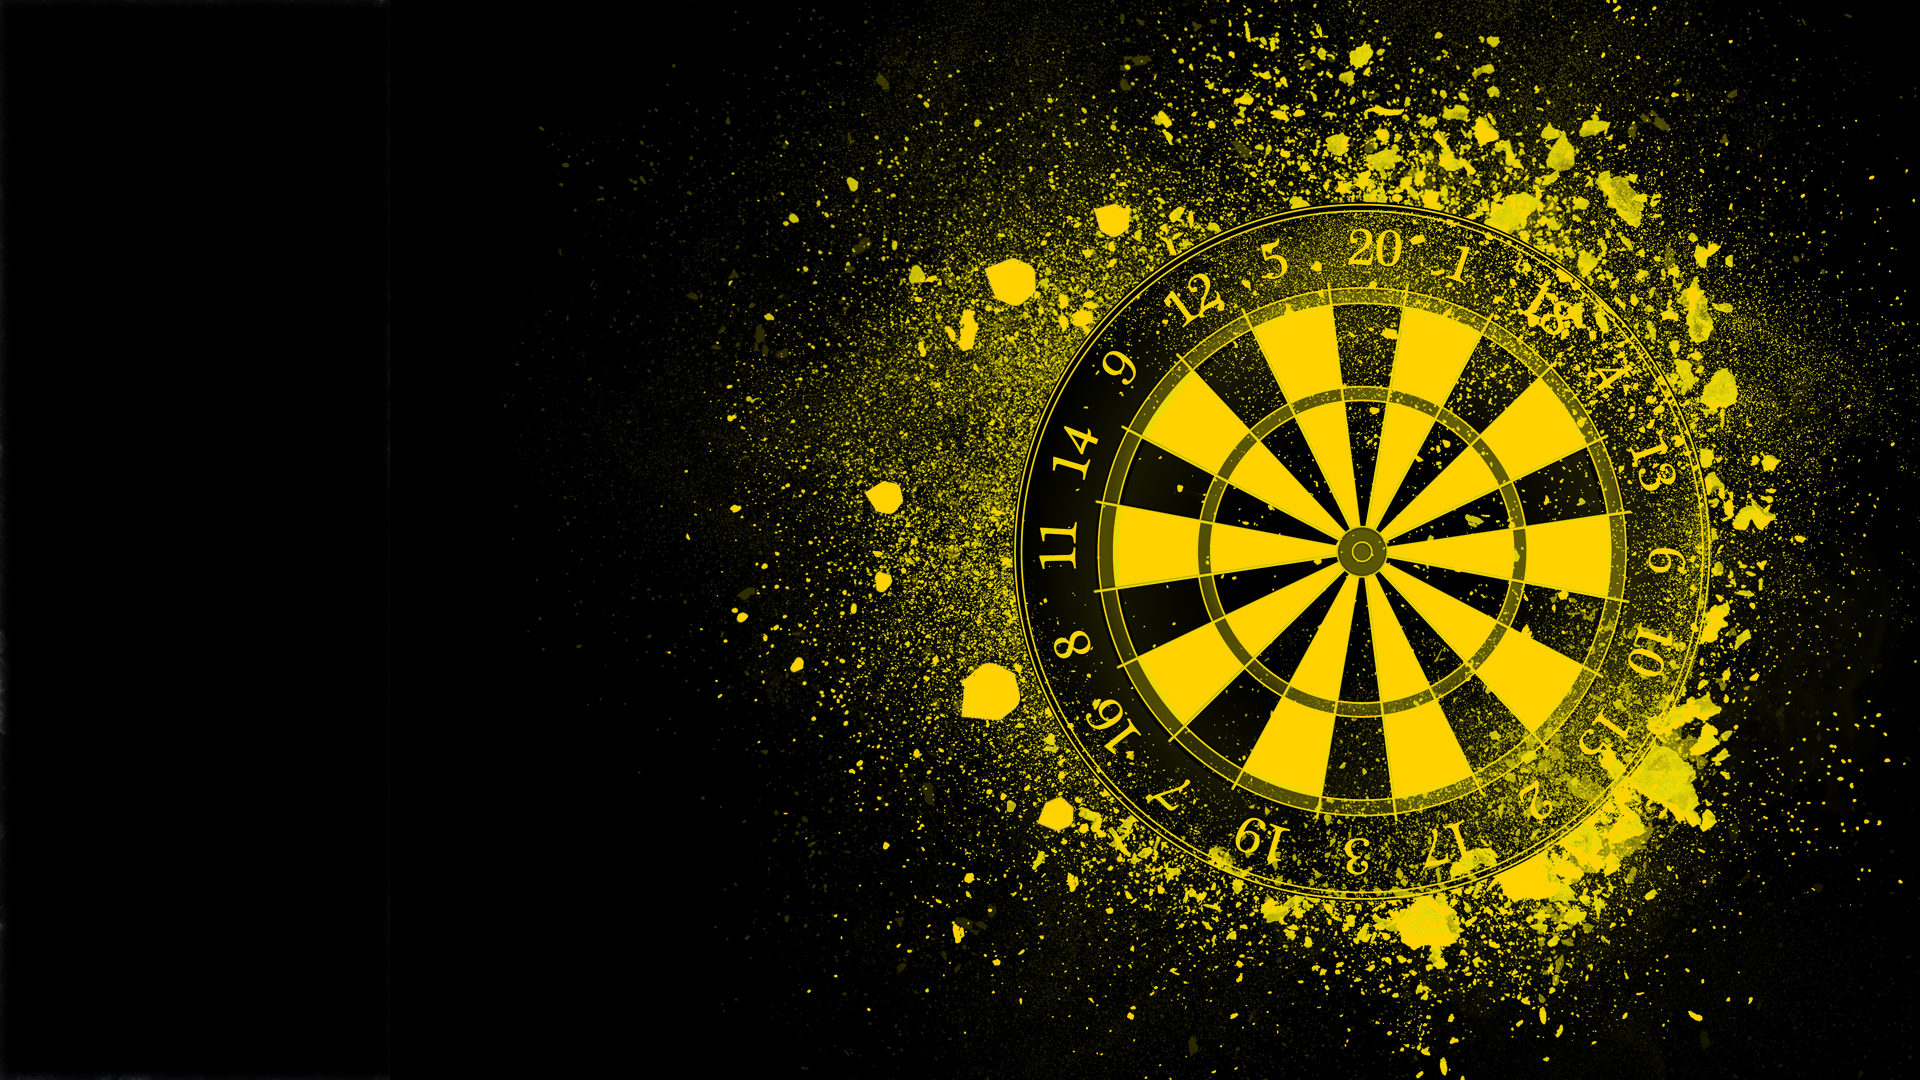 Tag: <span>world series of darts finals</span>